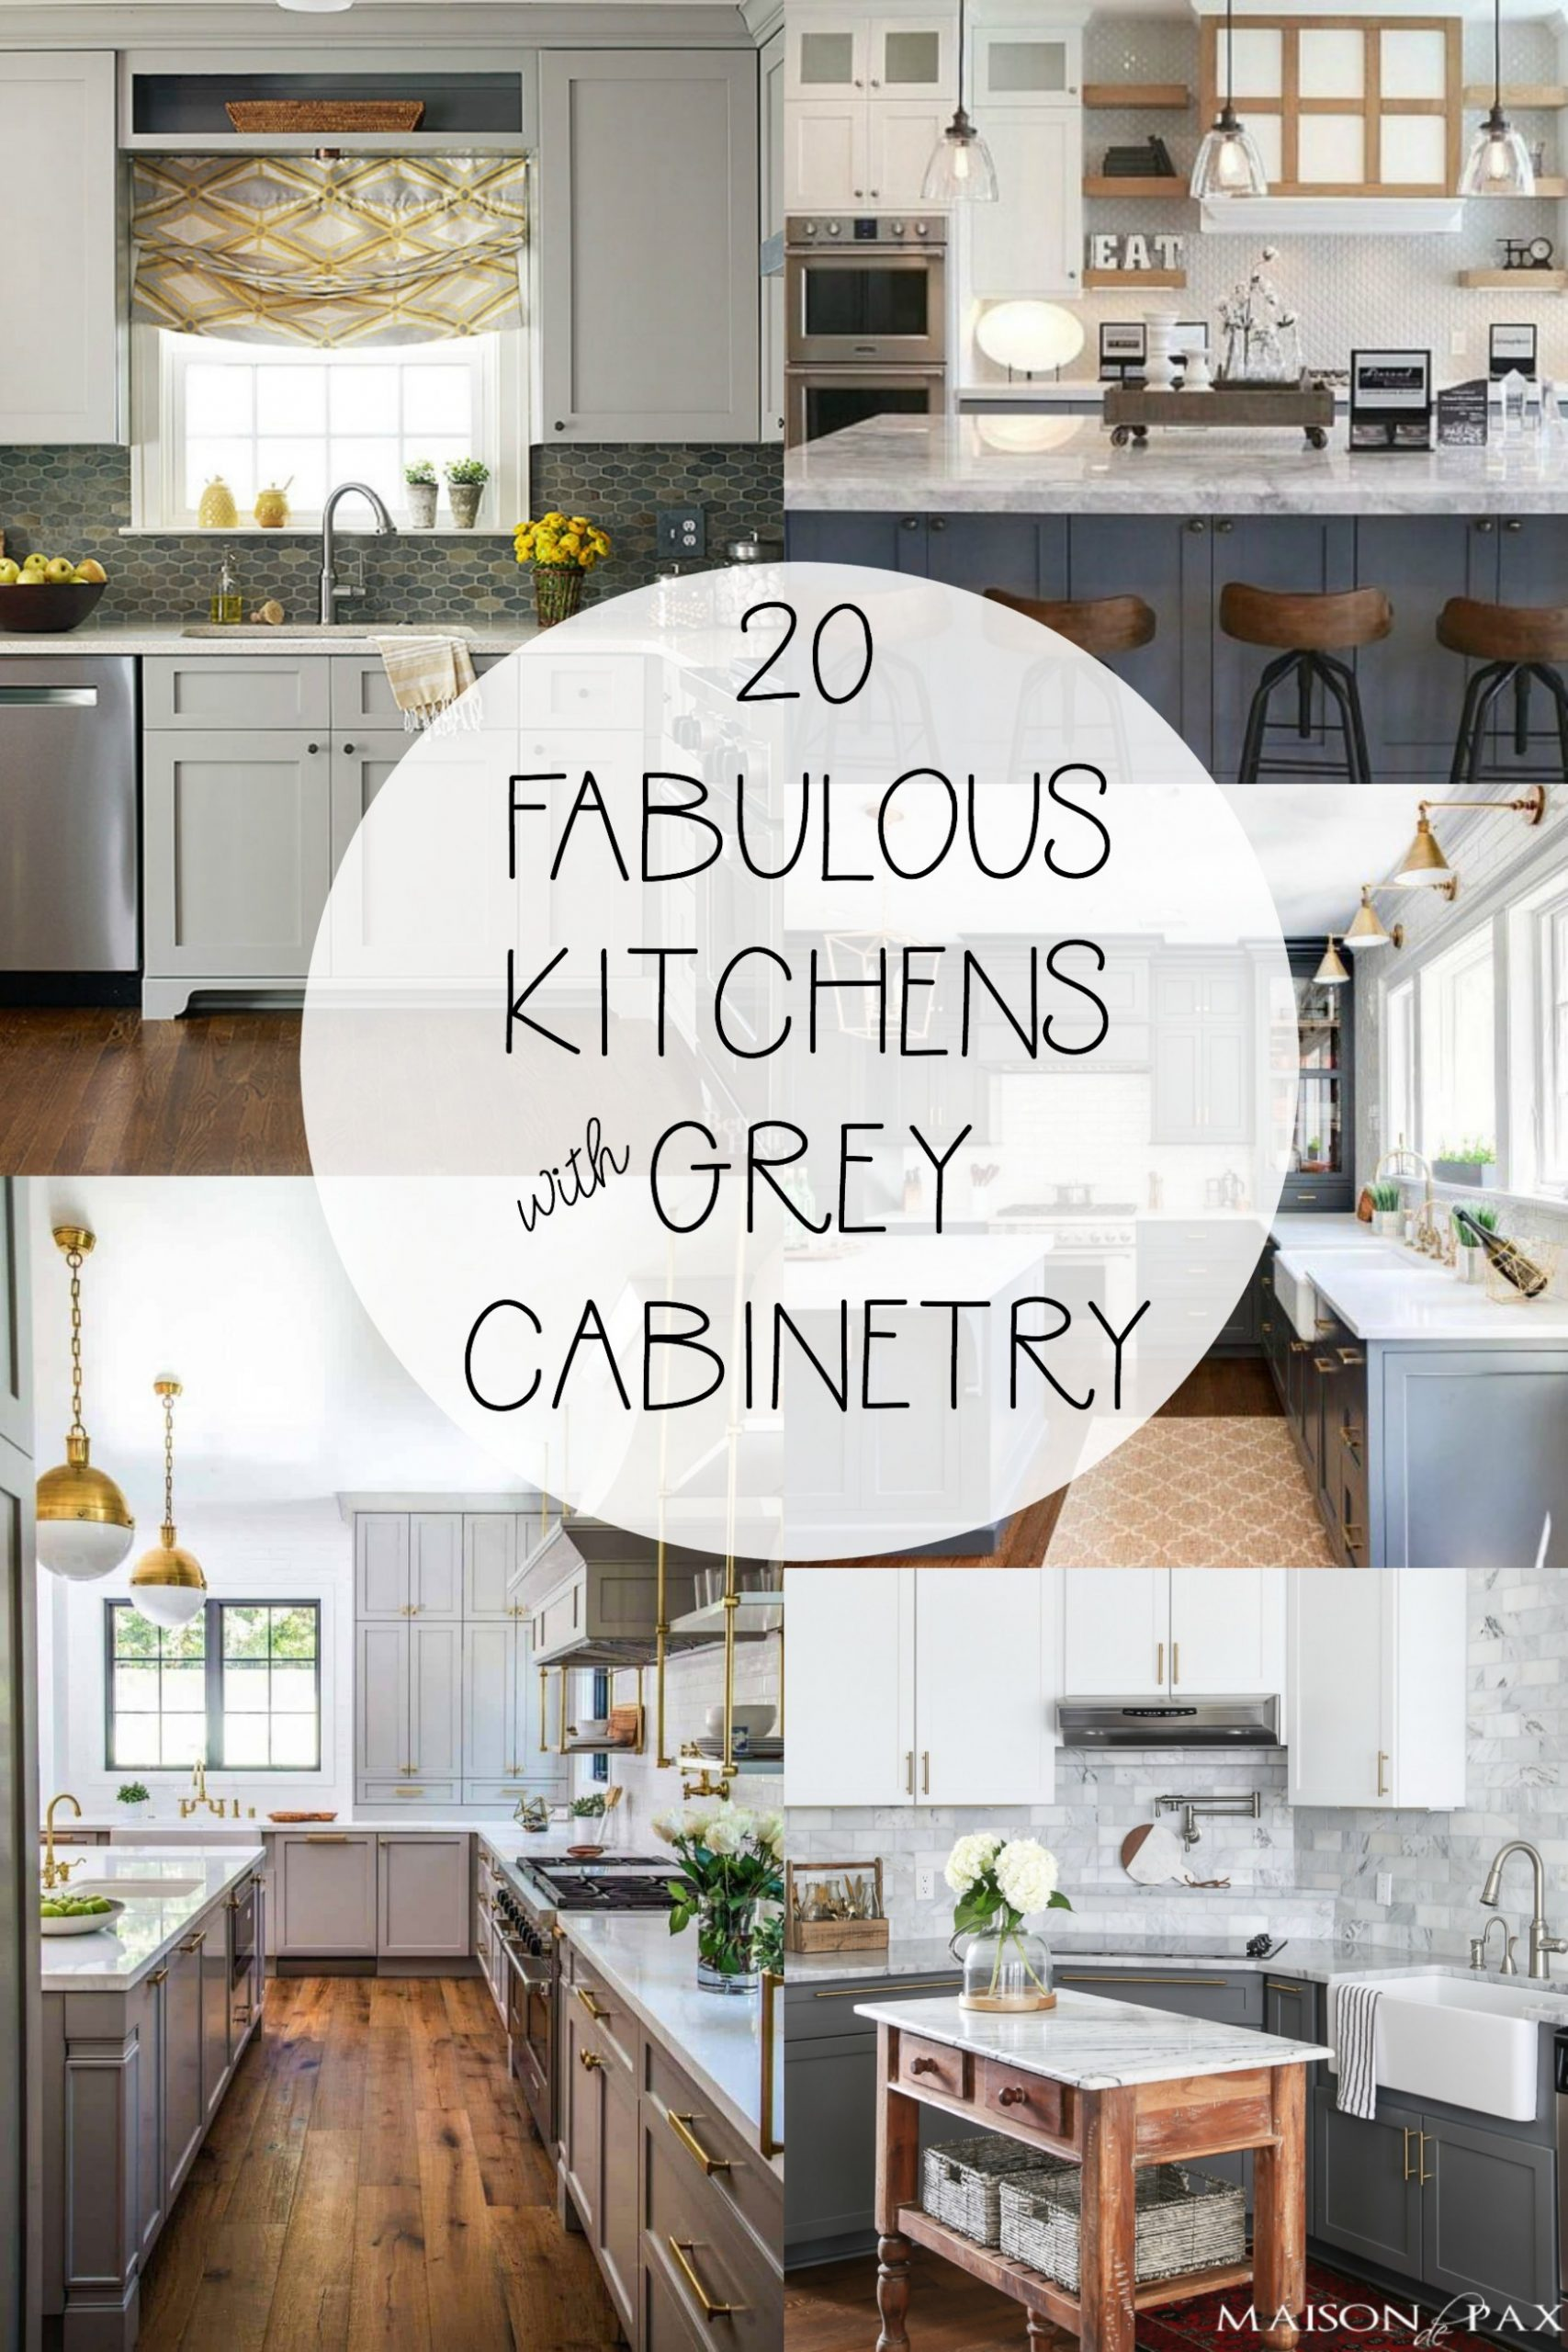 11 Fabulous Kitchens Featuring Grey Kitchen Cabinets  The Happy  - Beautiful Kitchens With Grey Cabinets